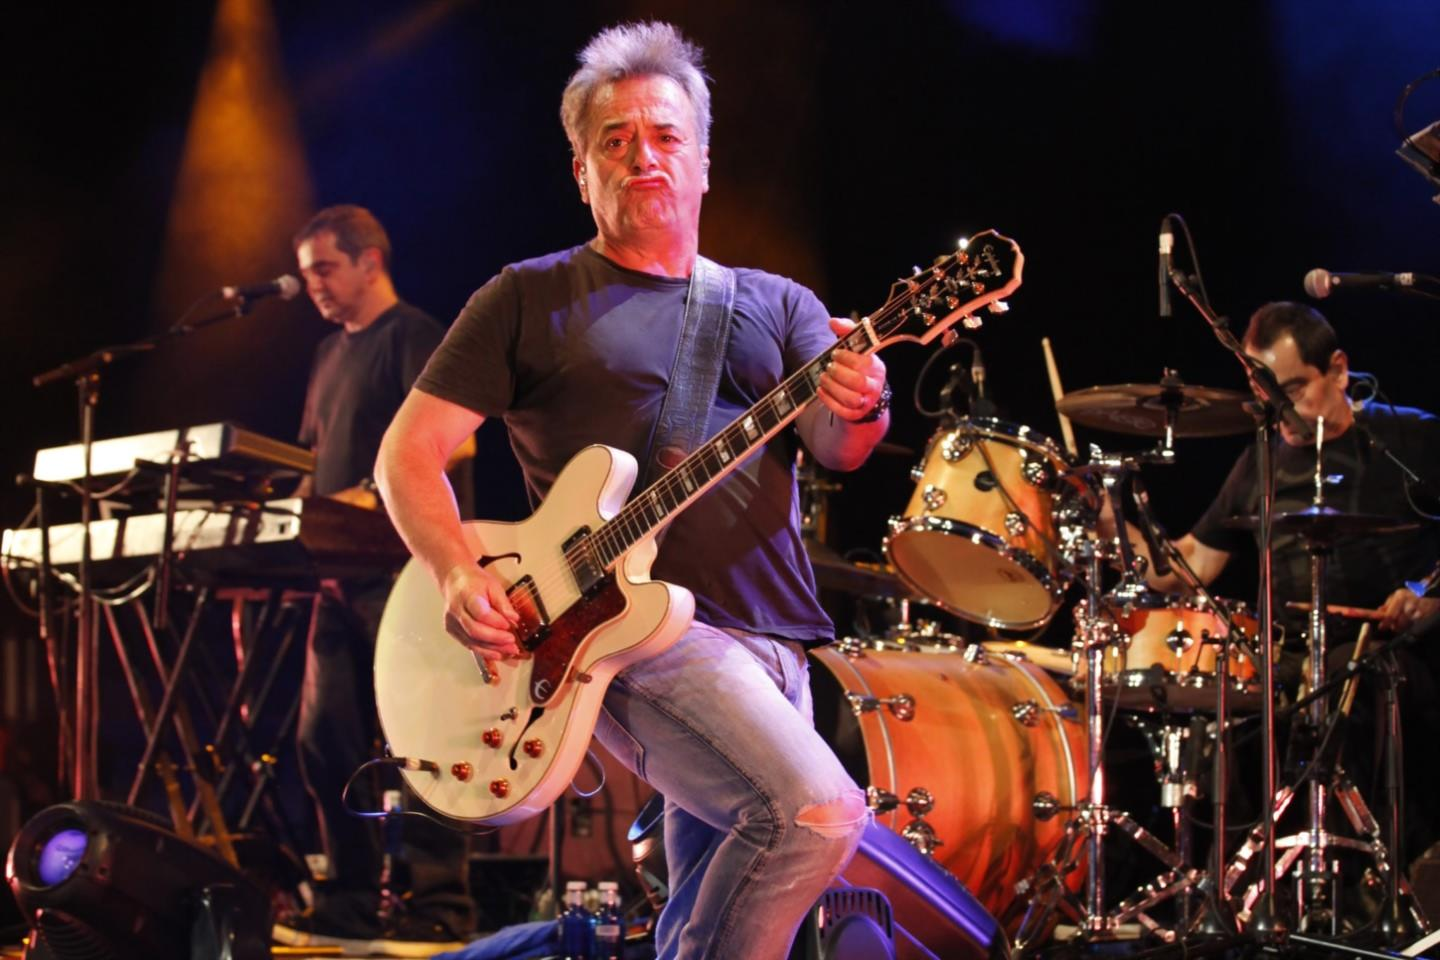 Enanitos Verdes Tour 2020 Hombres G Tickets | Hombres G Tour Dates 2020 and Concert Tickets